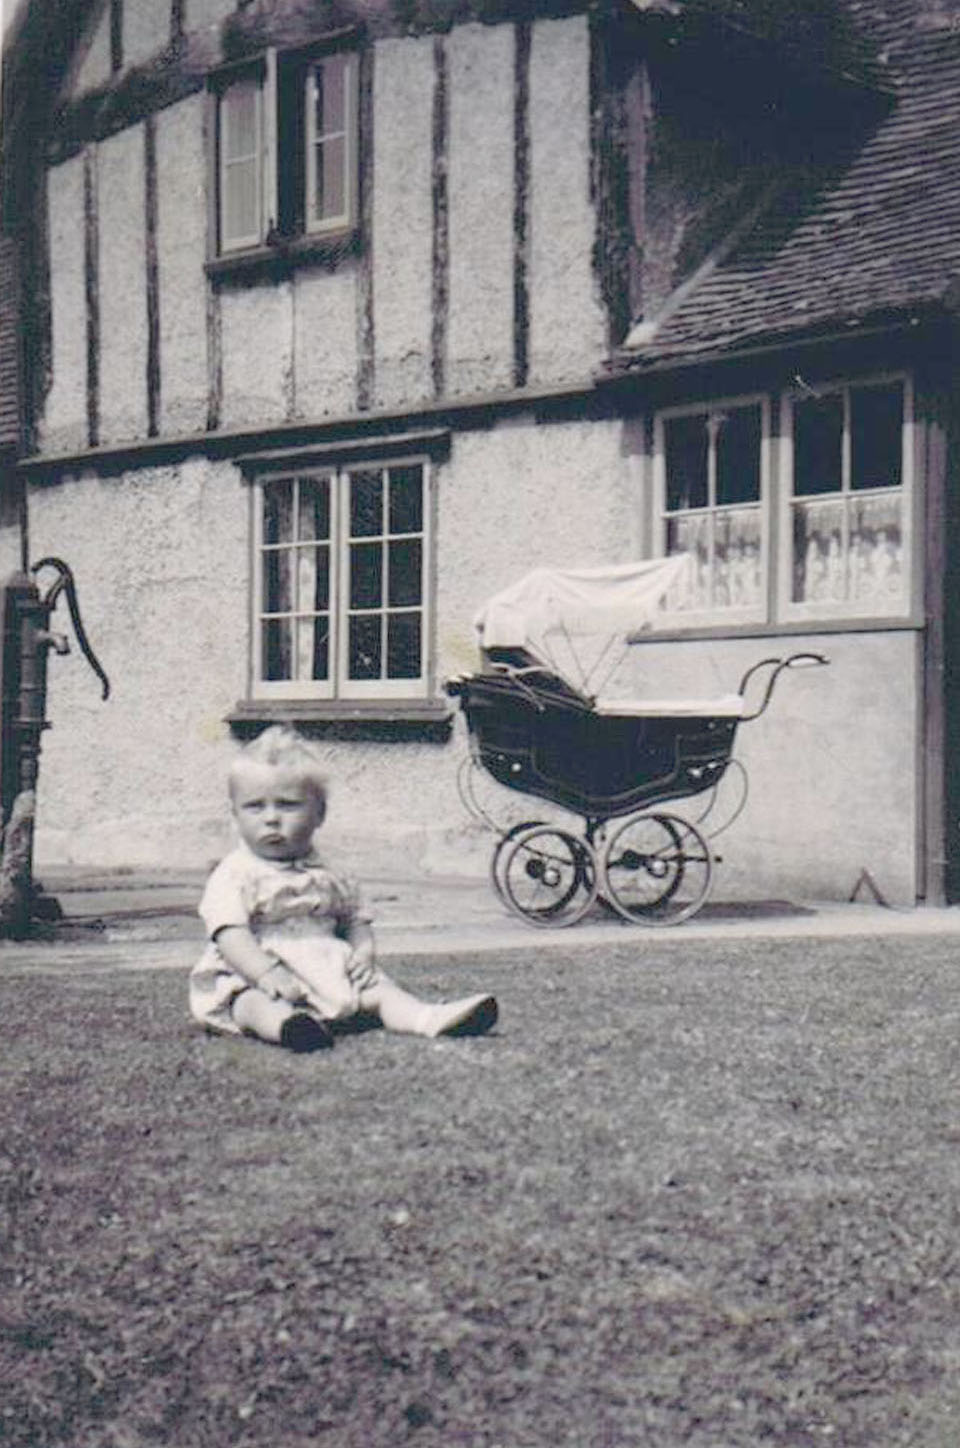 Stephen Lake outside his grandma's [ Miriam Weedon ]house.